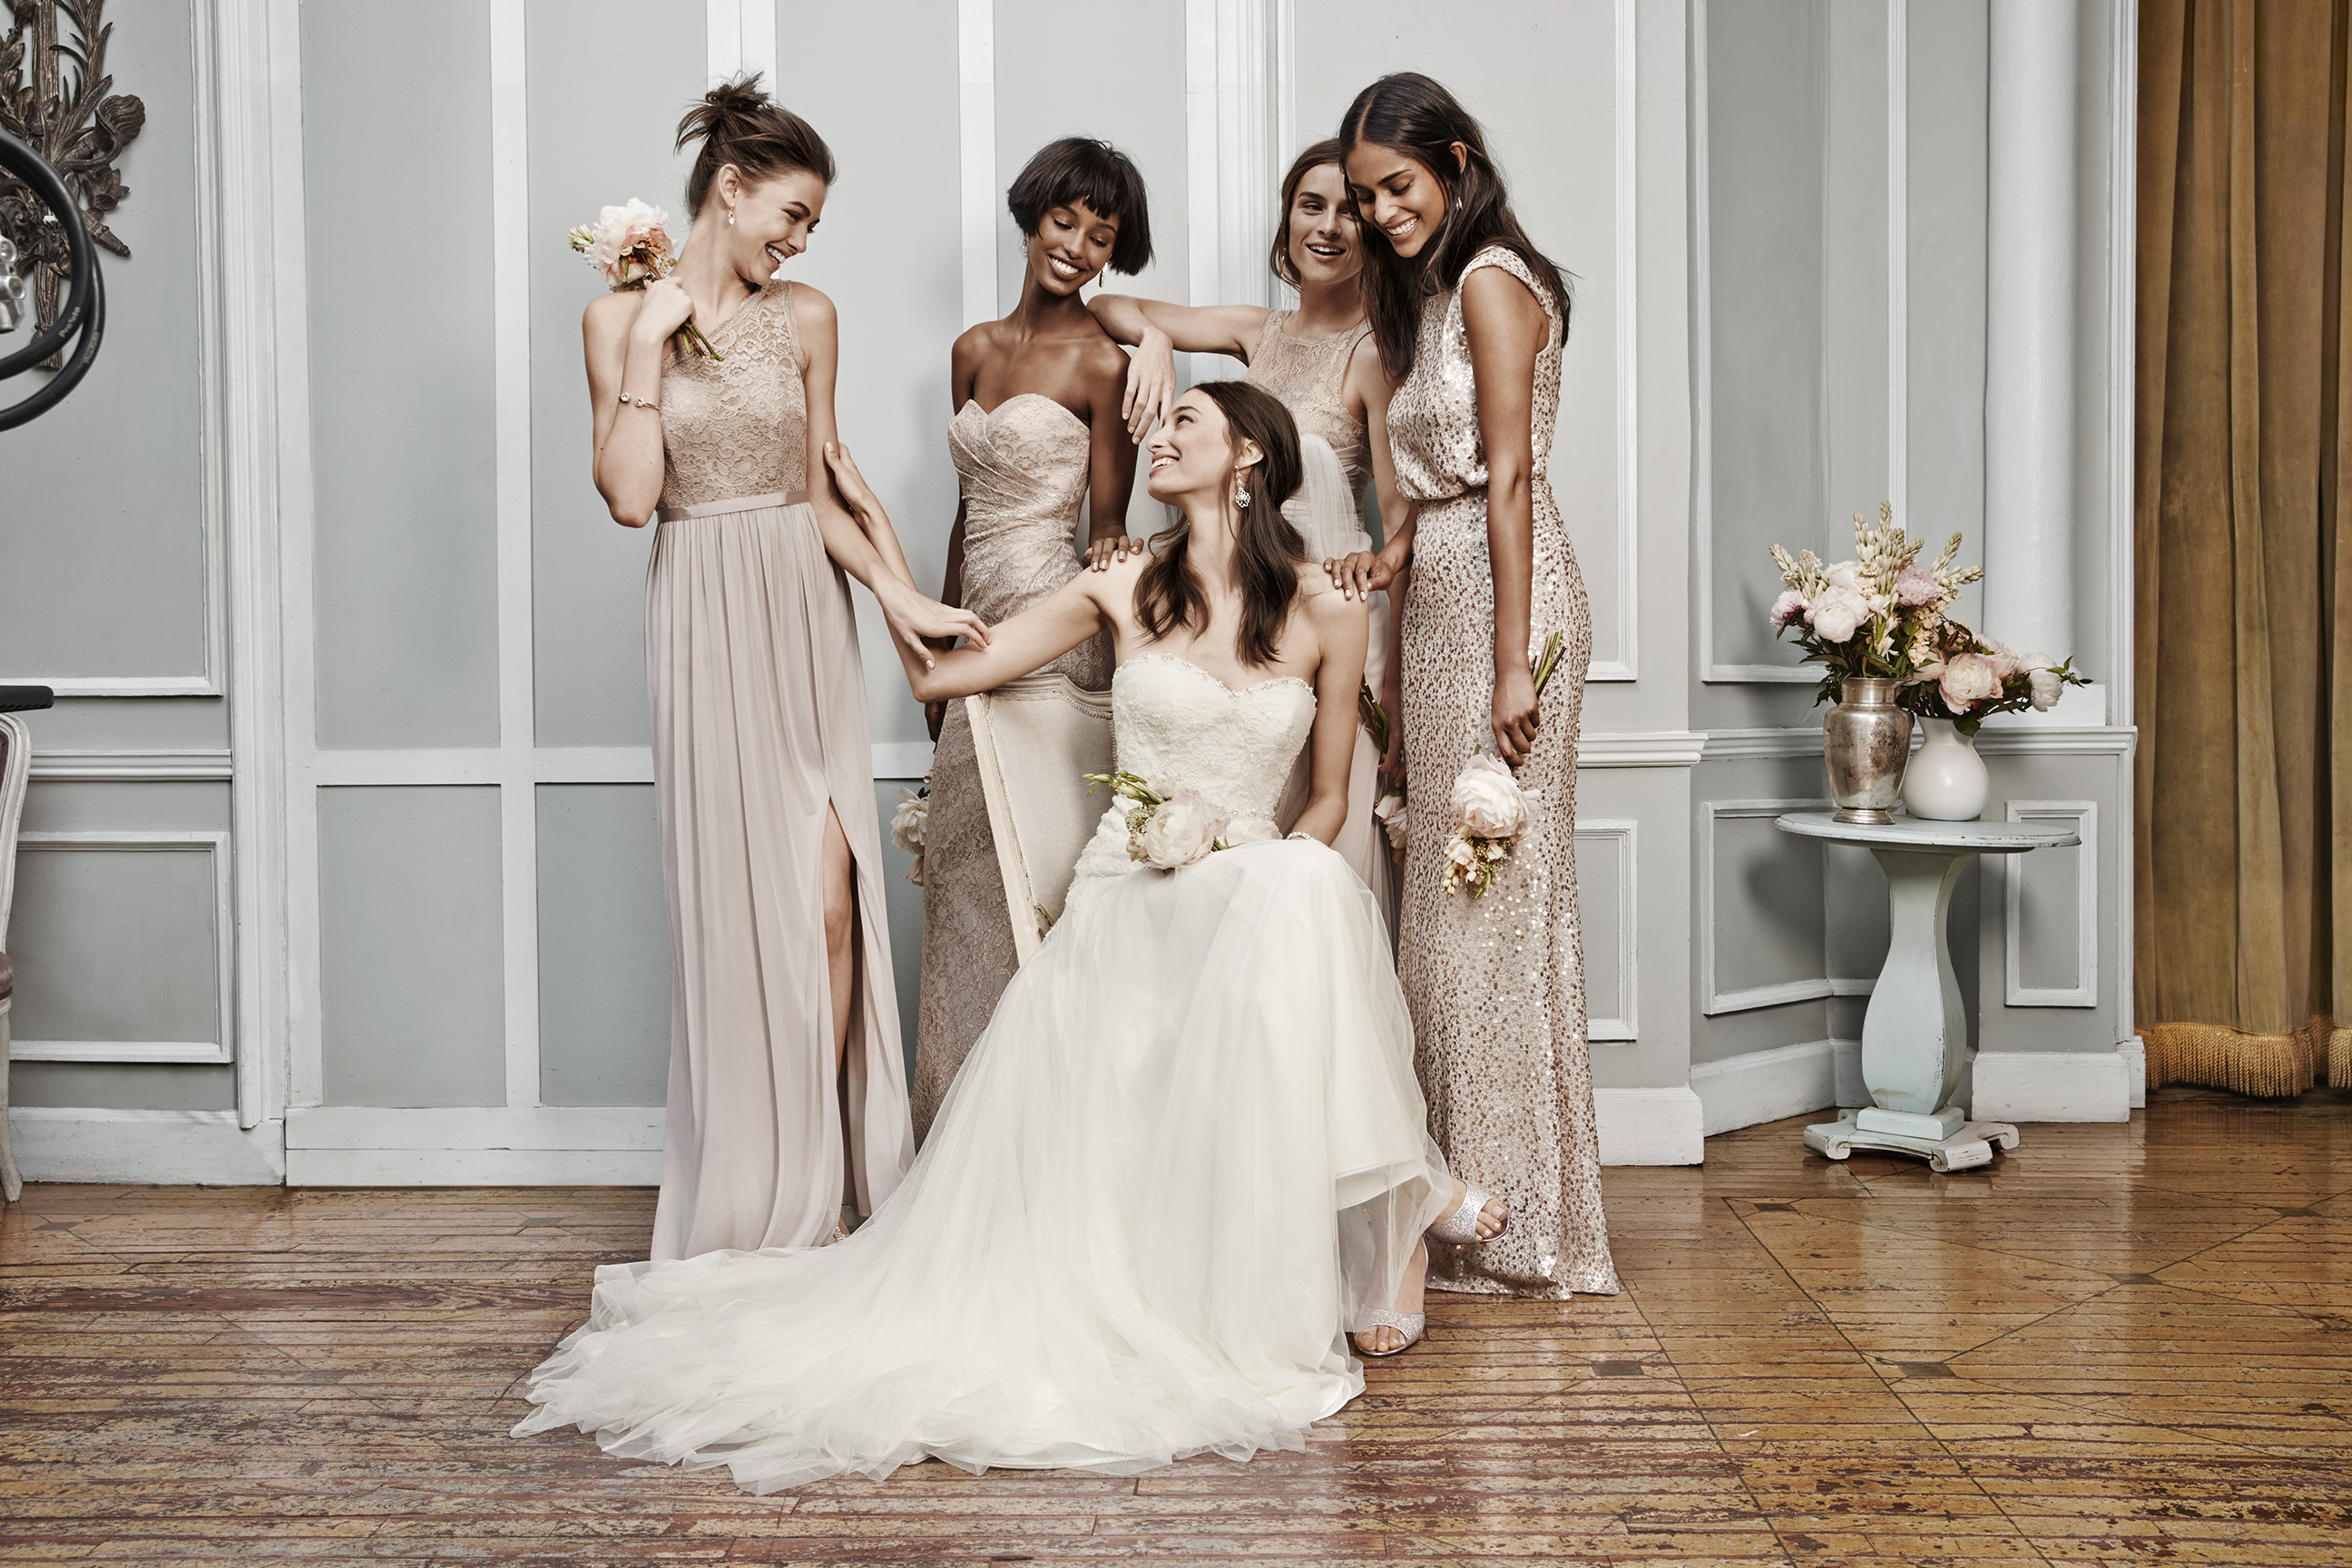 Here they are 2016s top bridesmaid dress trends 2016s top bridesmaid dress trends ombrellifo Choice Image